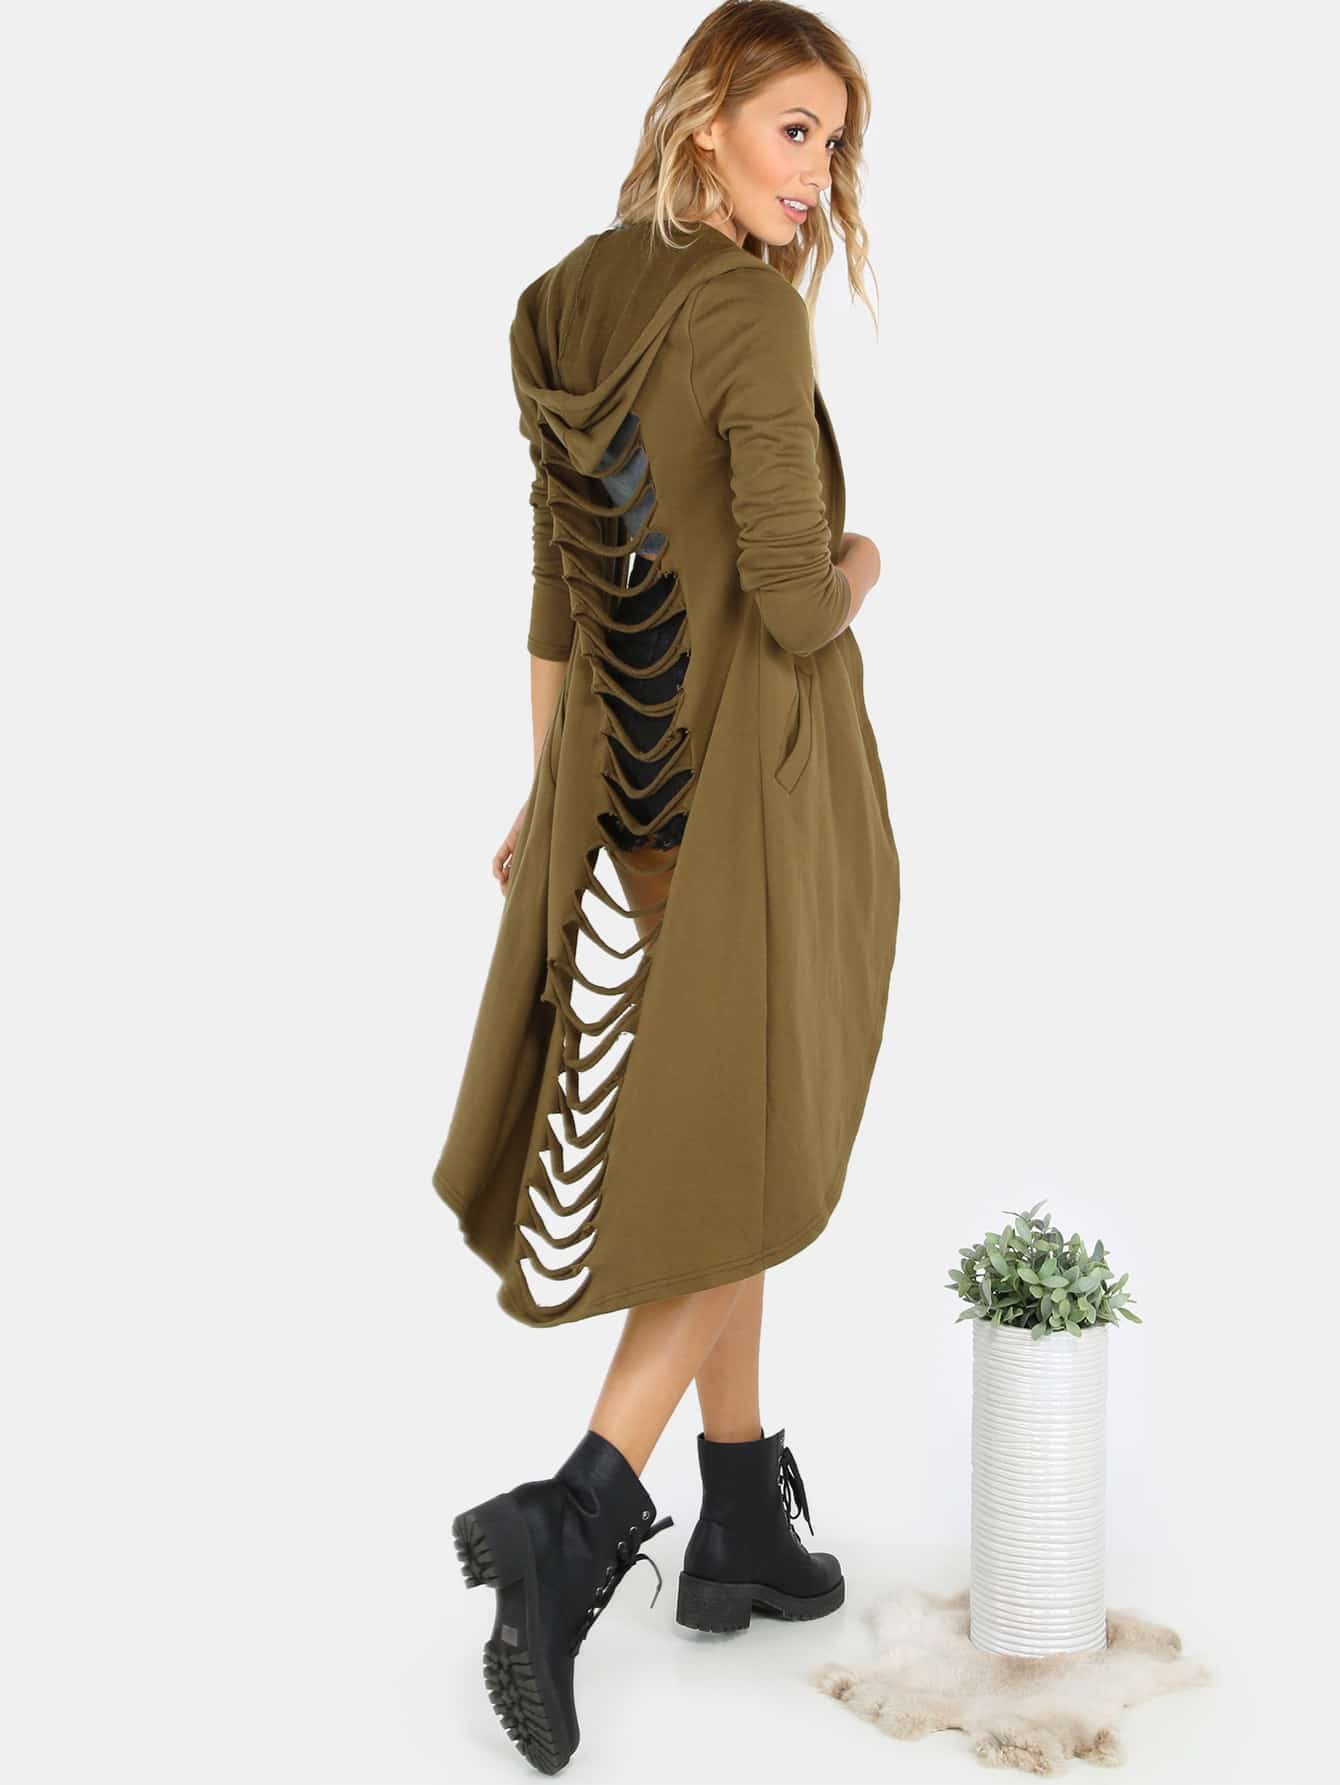 Slashed Open Front Hooded Sweat Coat OLIVE GREENSlashed Open Front Hooded Sweat Coat OLIVE GREEN<br><br>color: Green<br>size: L,M,S,XS